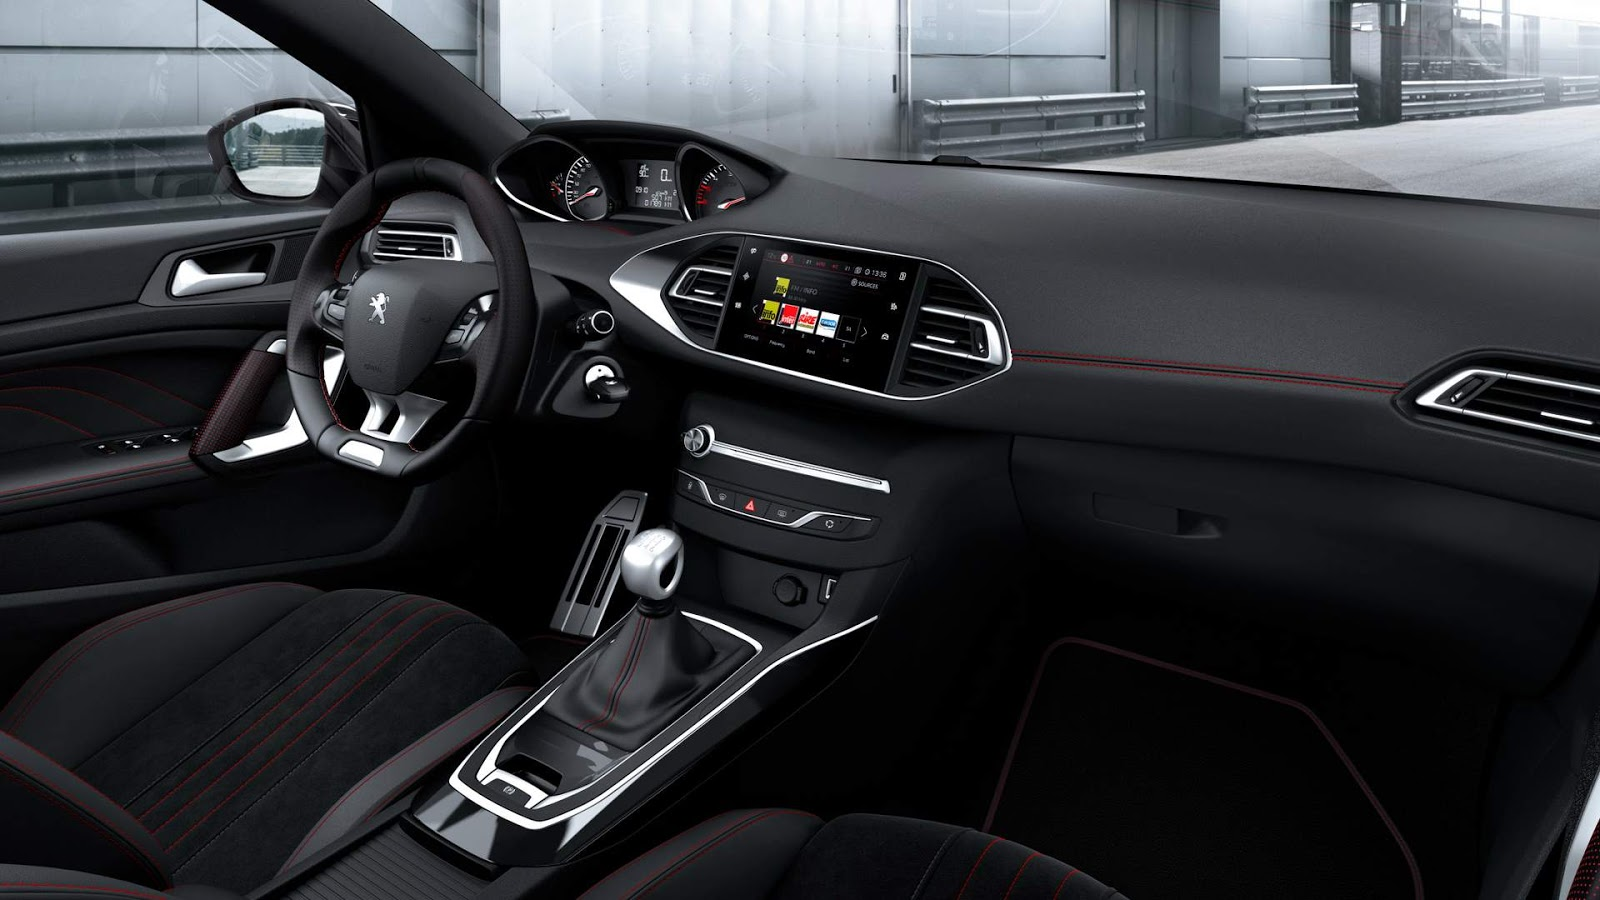 peugeot 308 e 308 gti 2018 fotos e especifica es oficiais car blog br. Black Bedroom Furniture Sets. Home Design Ideas